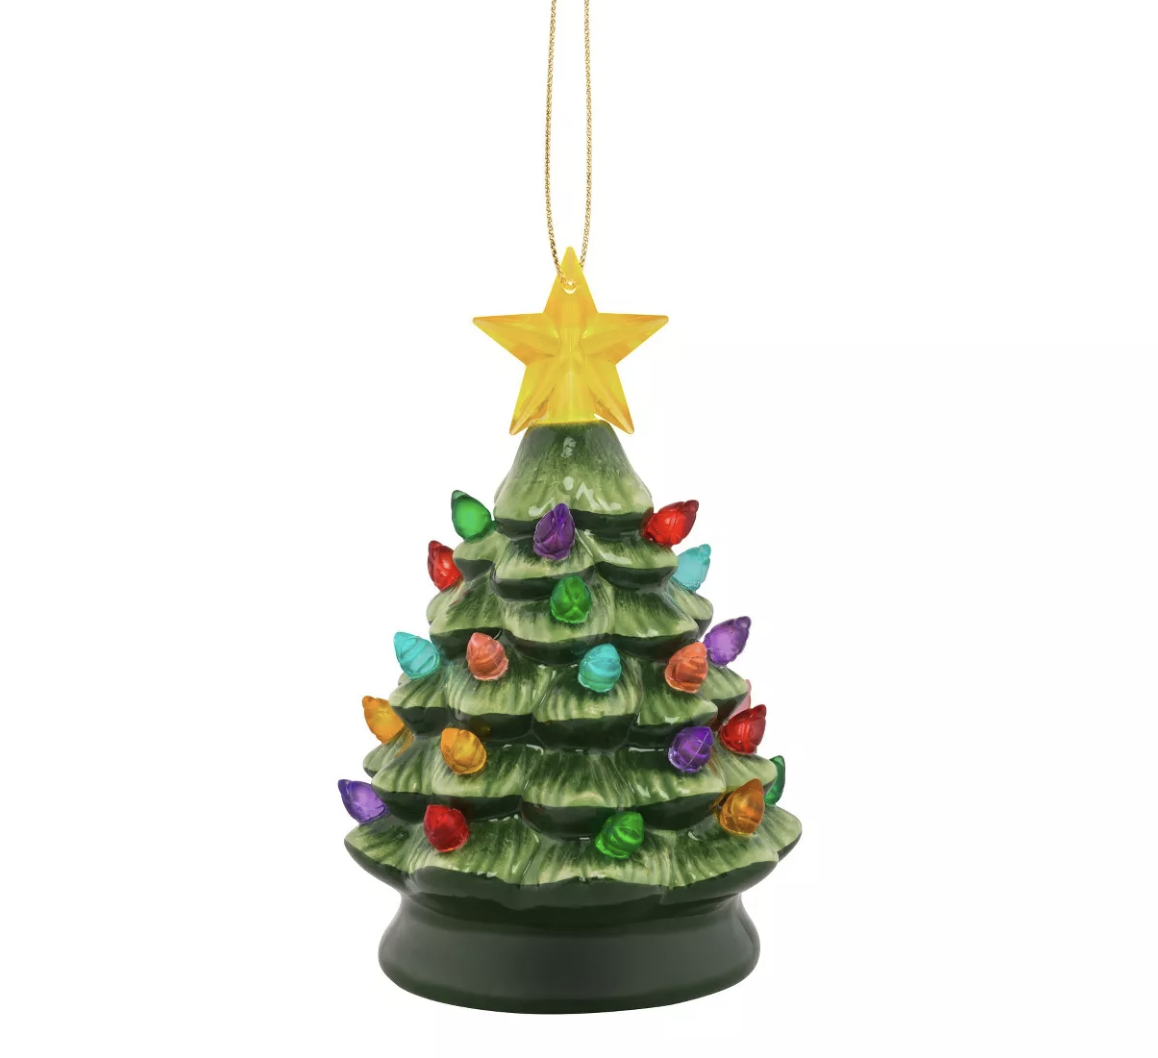 Photo from target.com